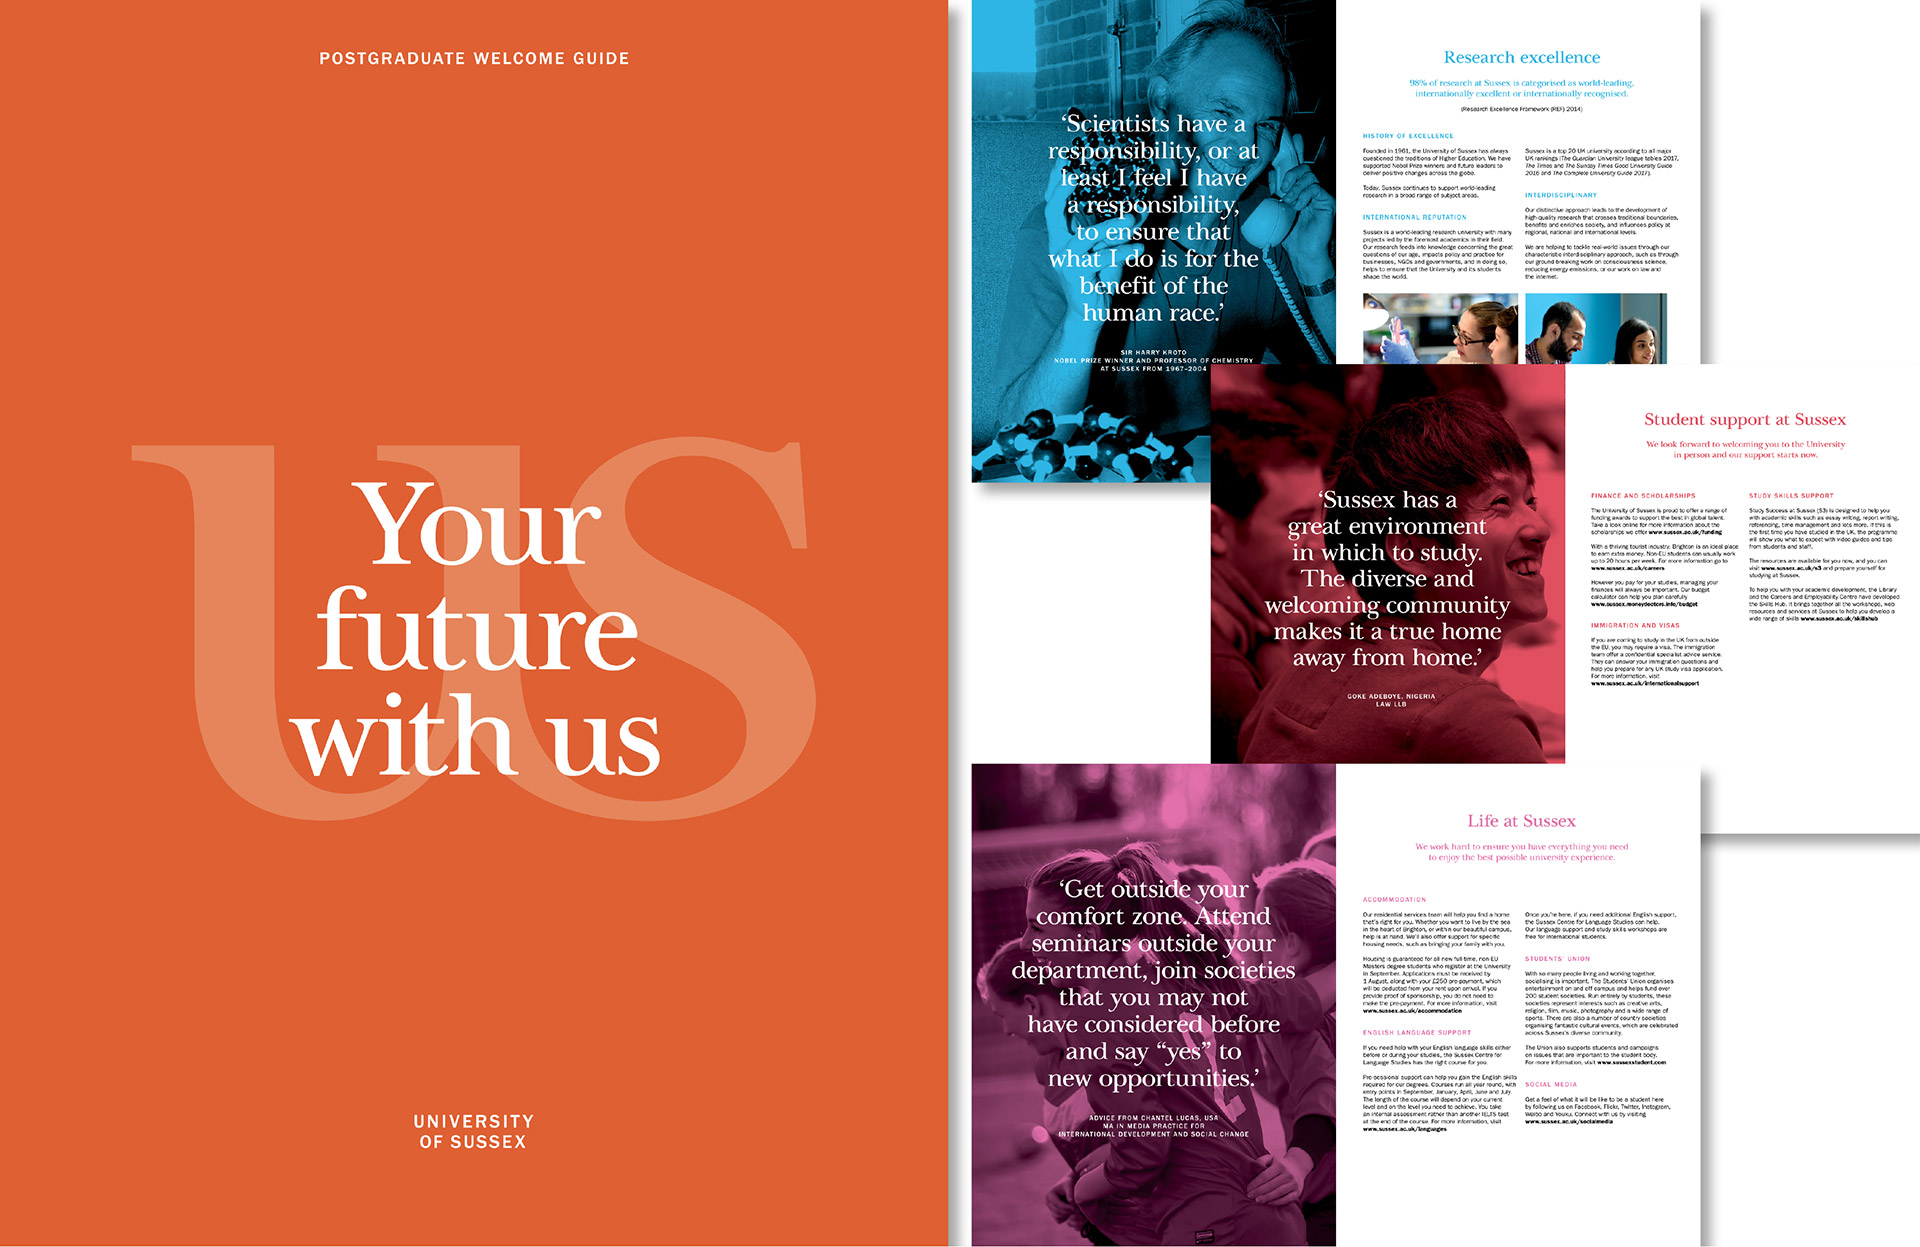 The University of Sussex Postgraduate welcome guide designed by Irish Butcher